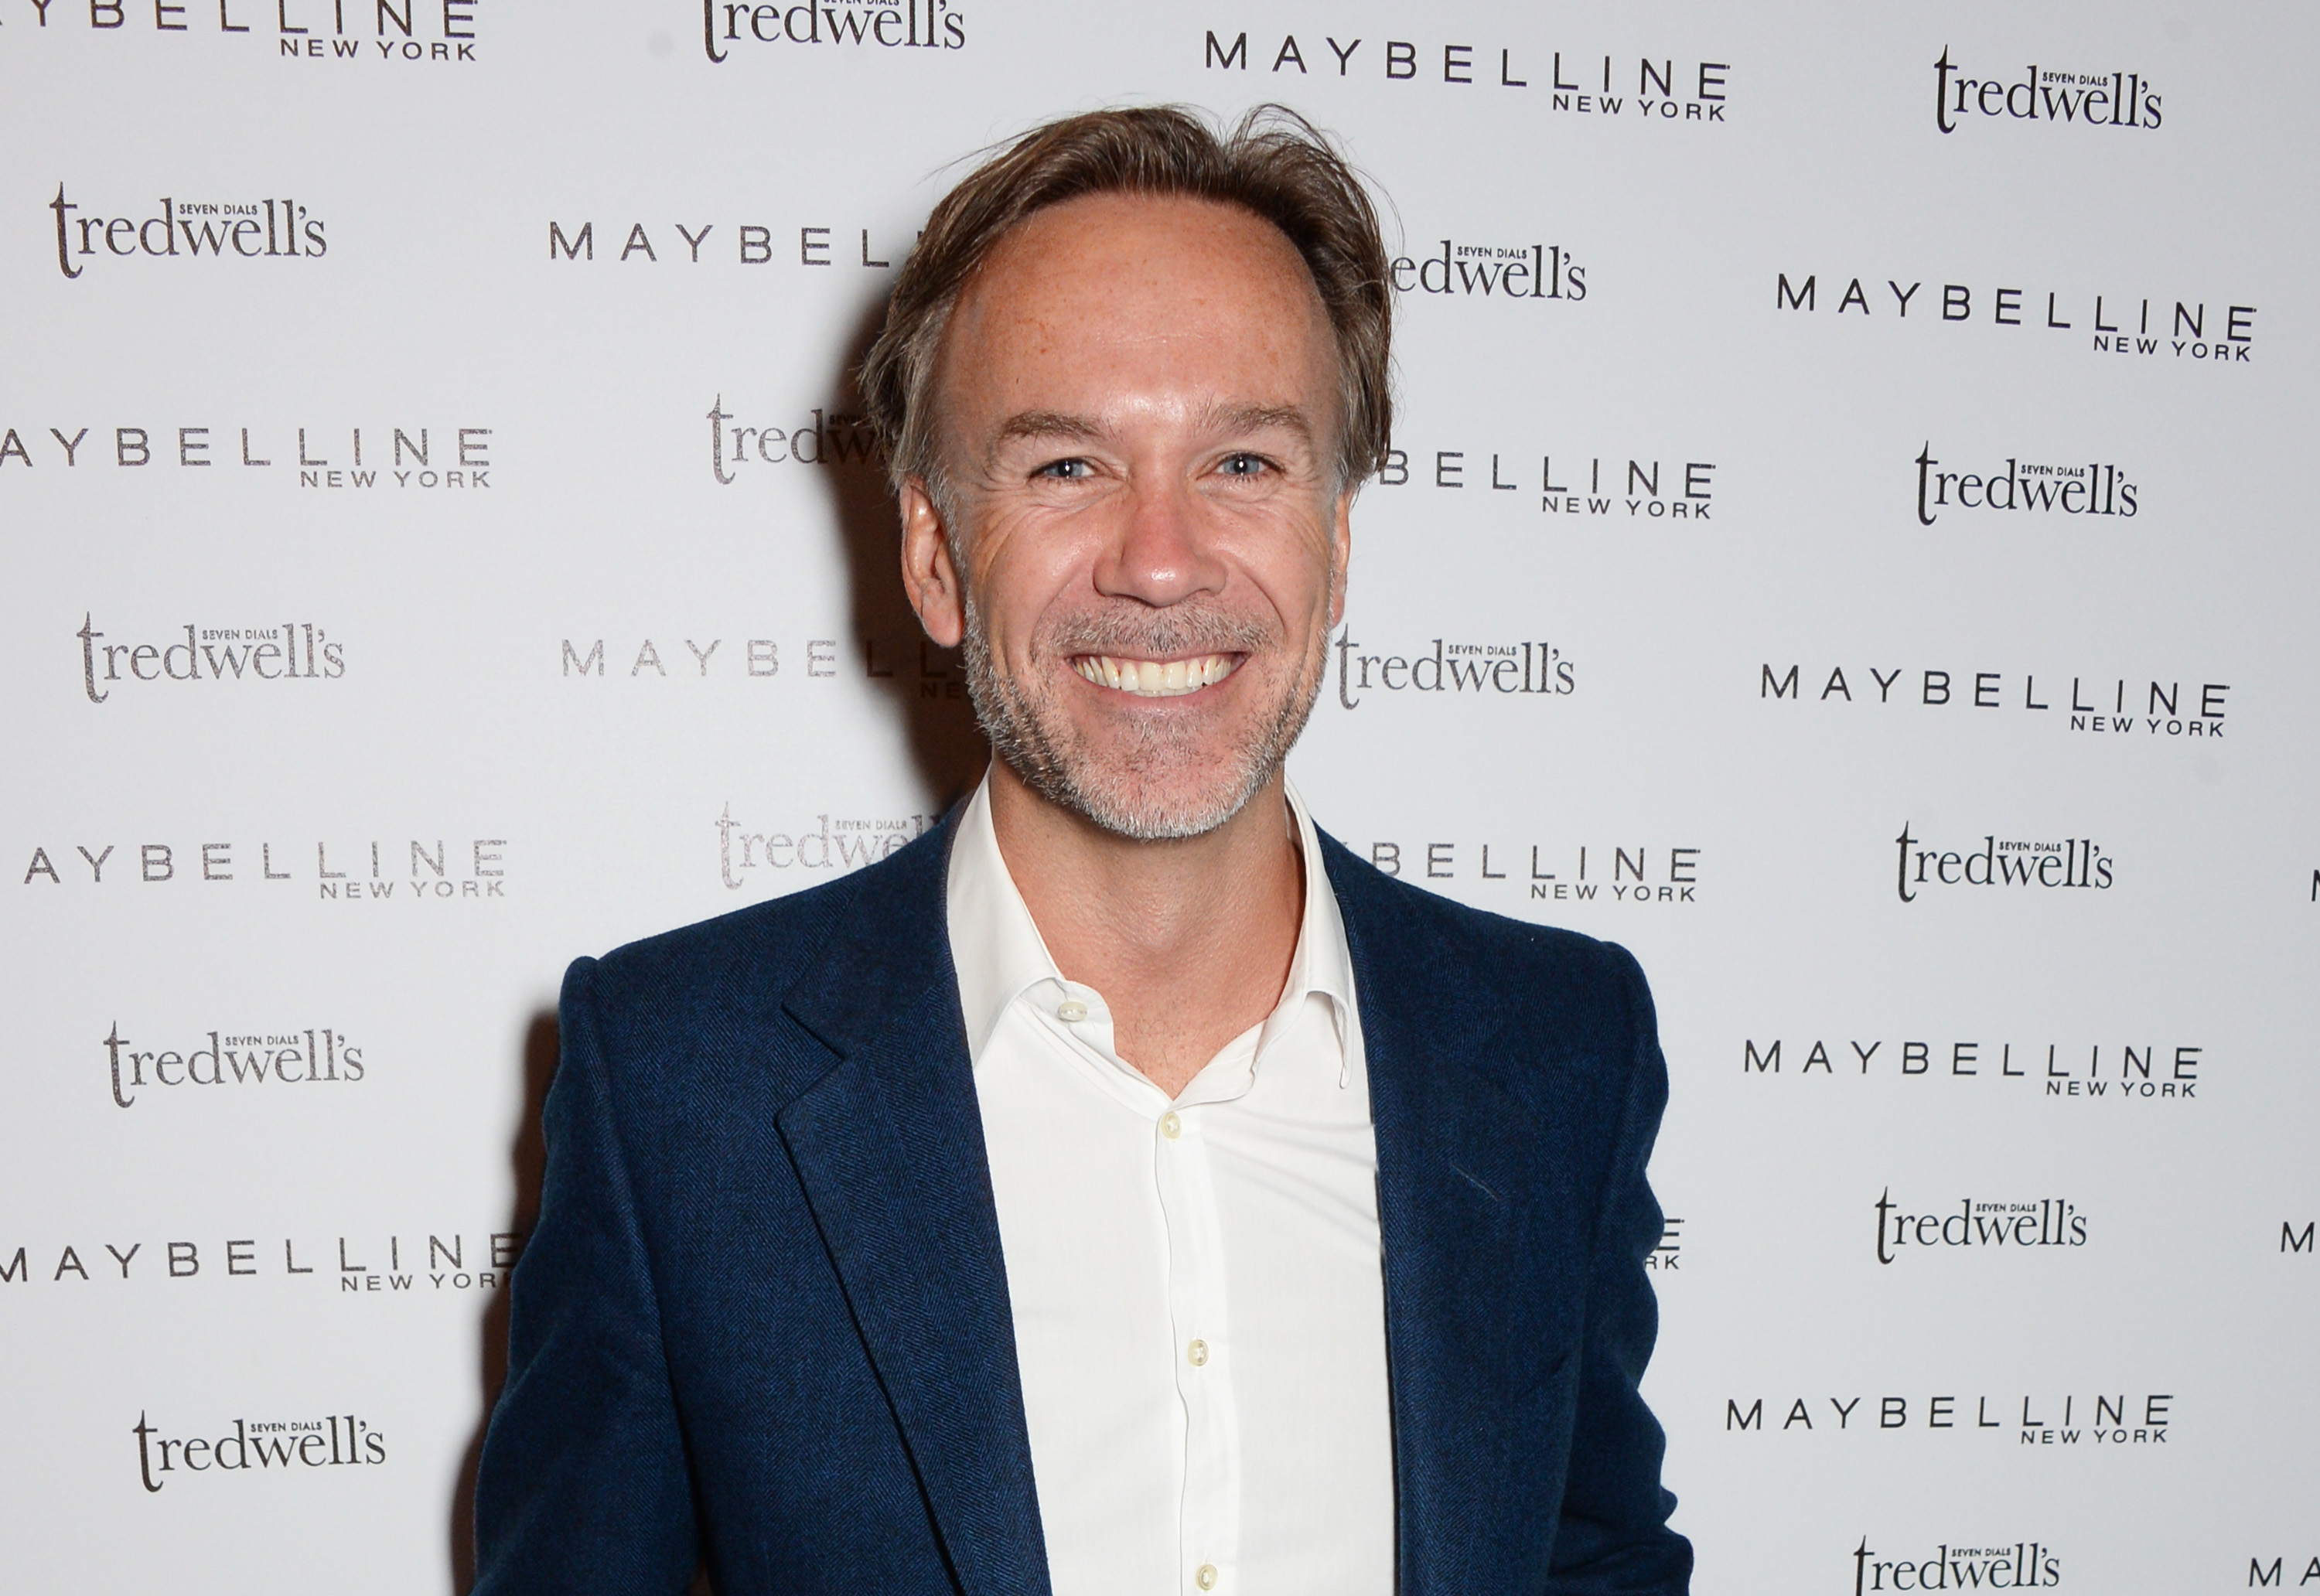 Gregg Wallace 'eats like a pig' says Masterchef co-star Marcus Wareing